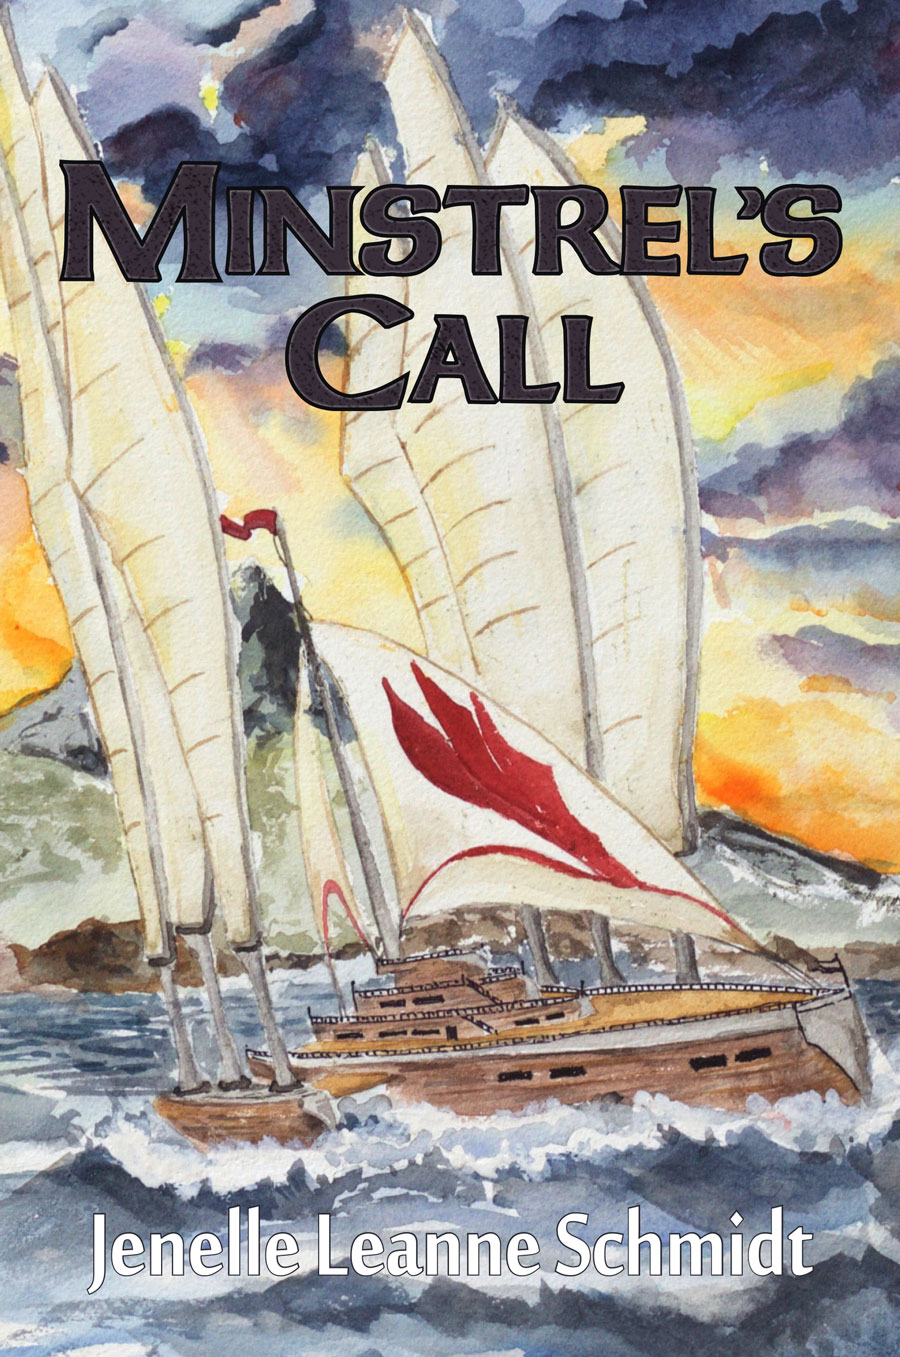 minstrel's call cover for the fantasy novel by Jenelle Schmidt